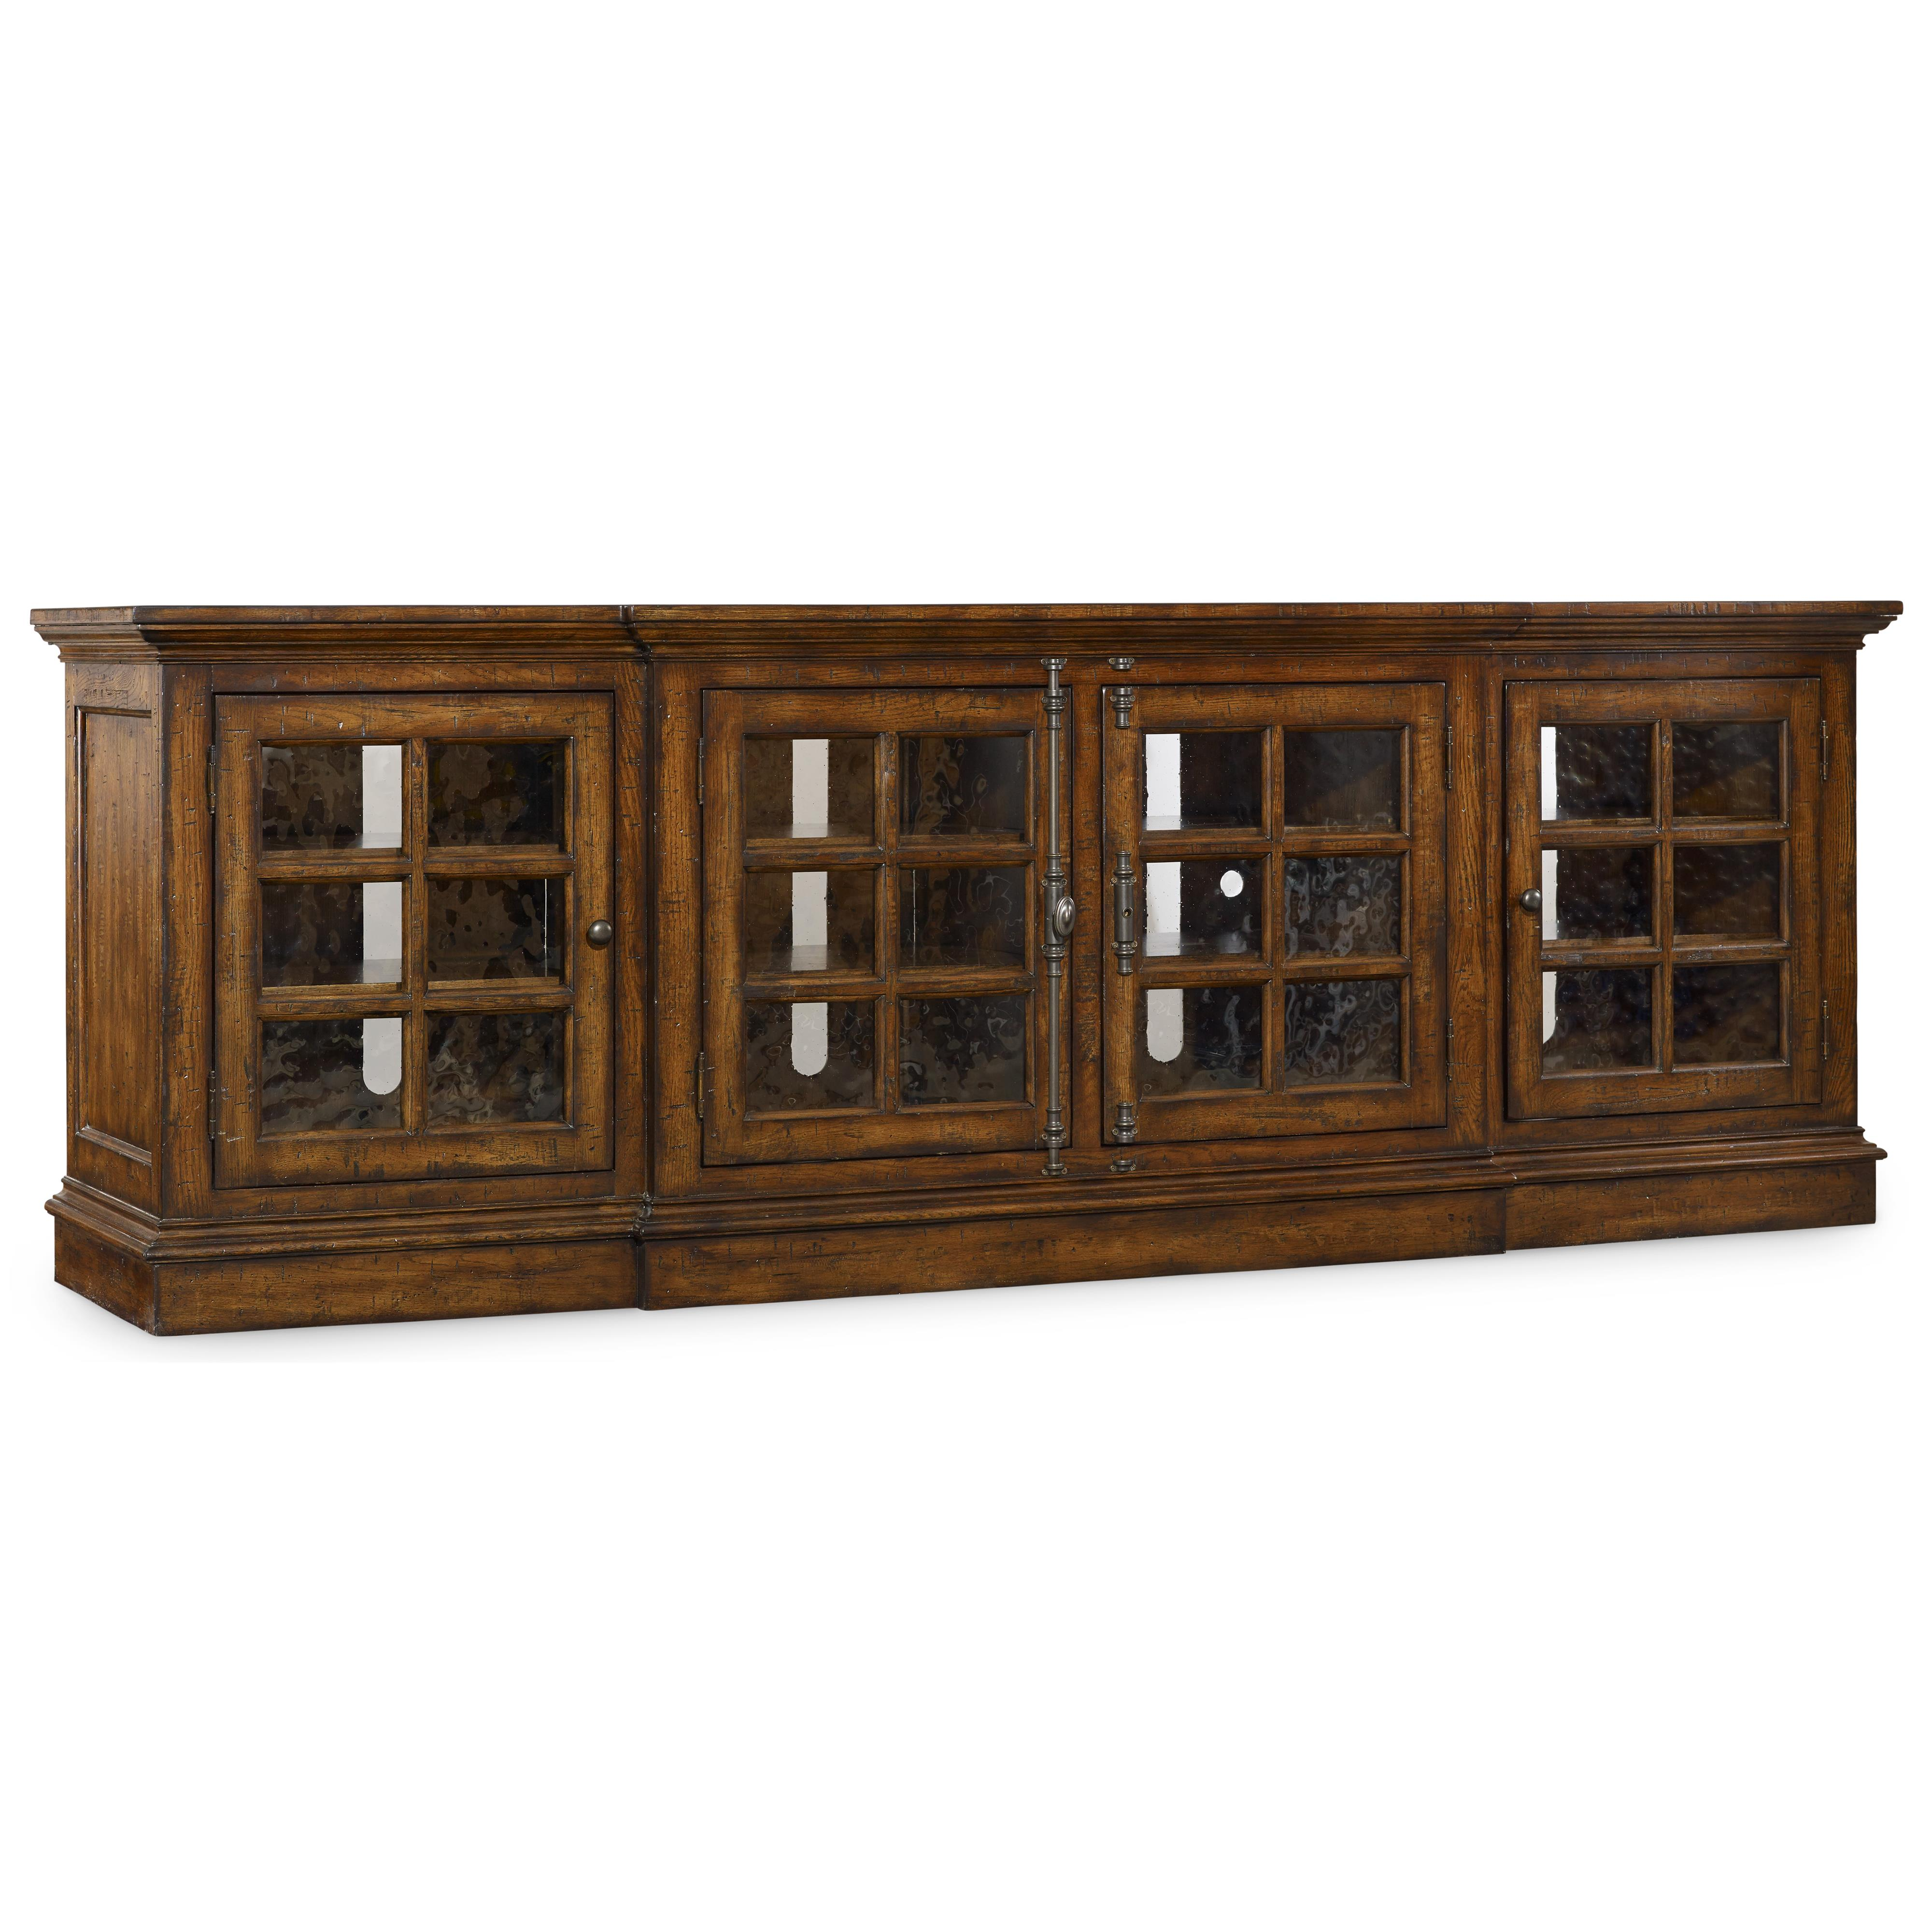 Hooker Furniture Brantley Entertainment Console - Item Number: 5302-55492